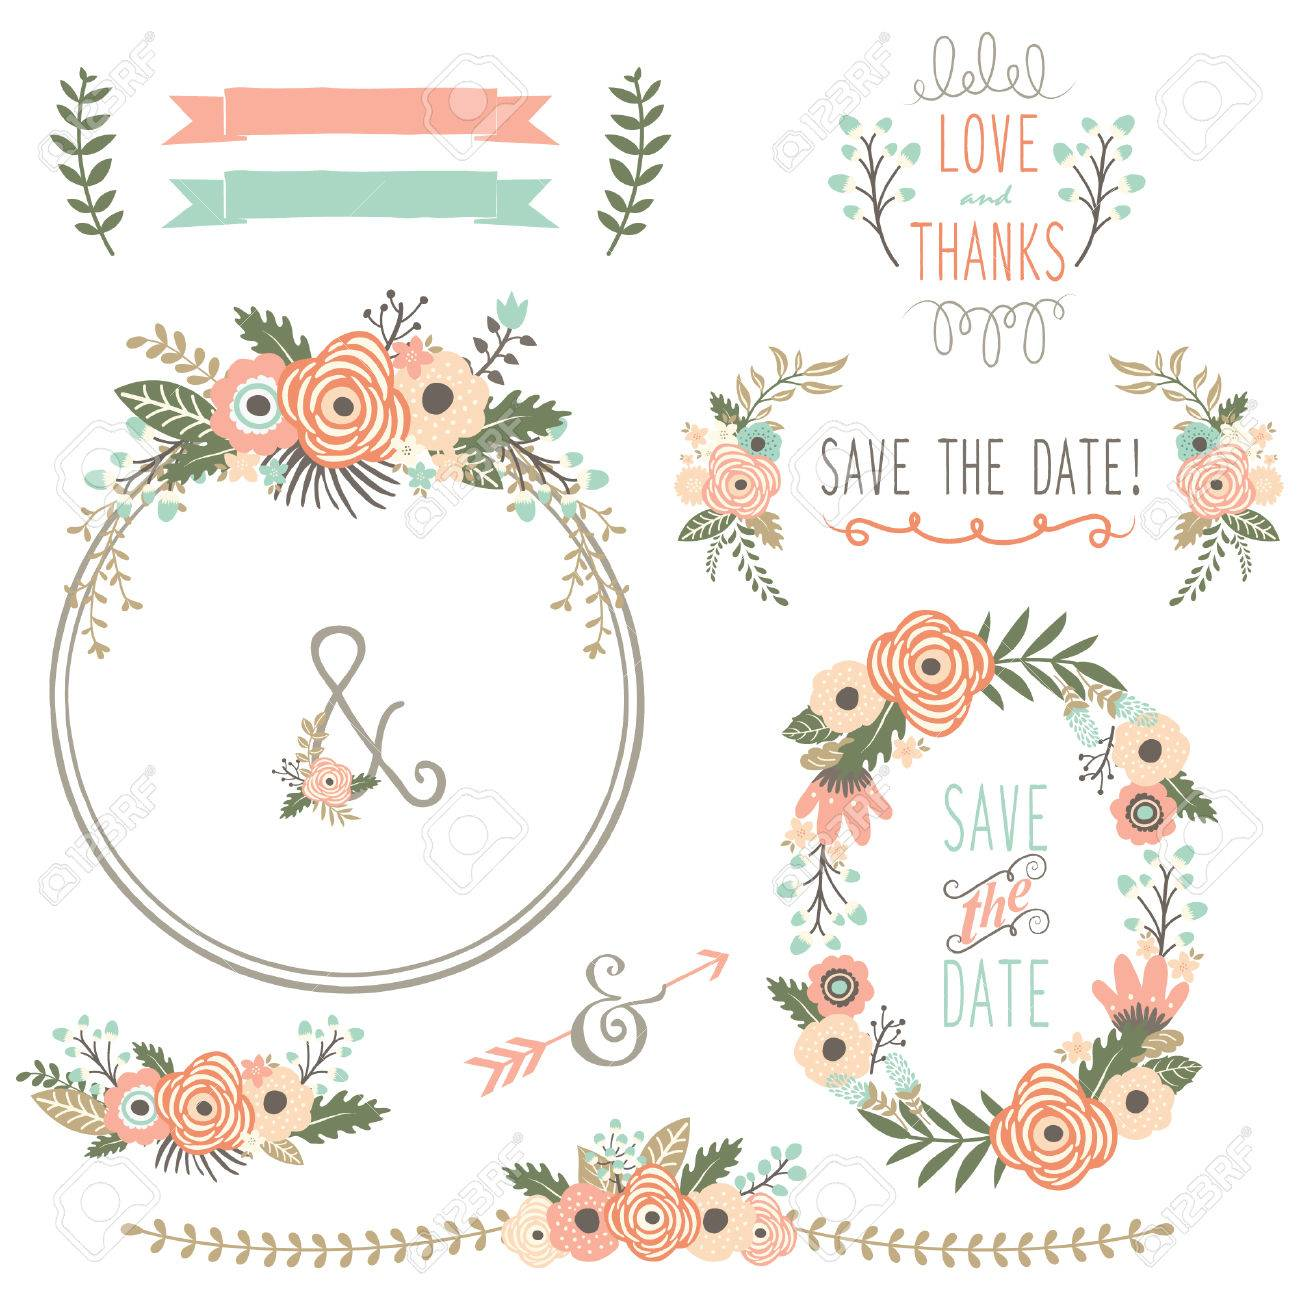 Rustic Wedding Flower Wreath Stock Vector